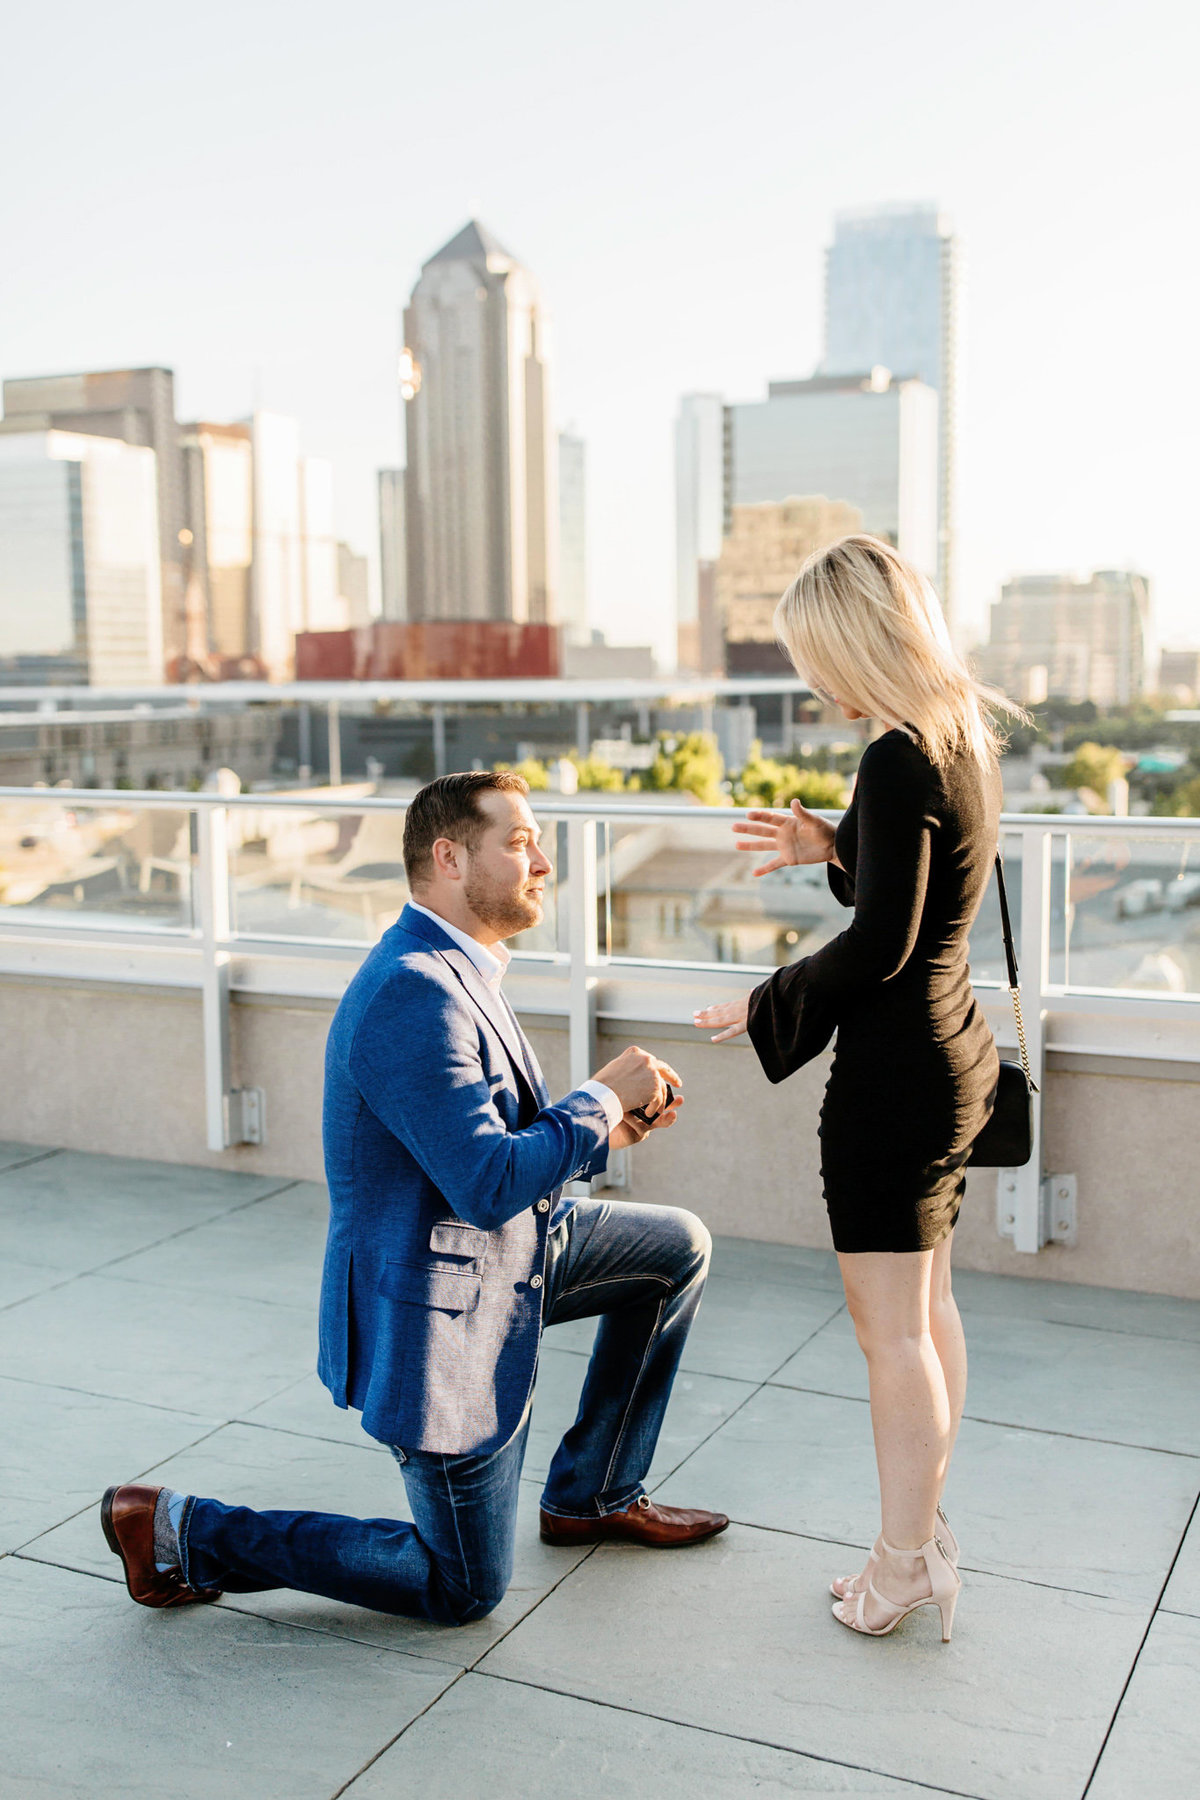 Eric & Megan - Downtown Dallas Rooftop Proposal & Engagement Session-29